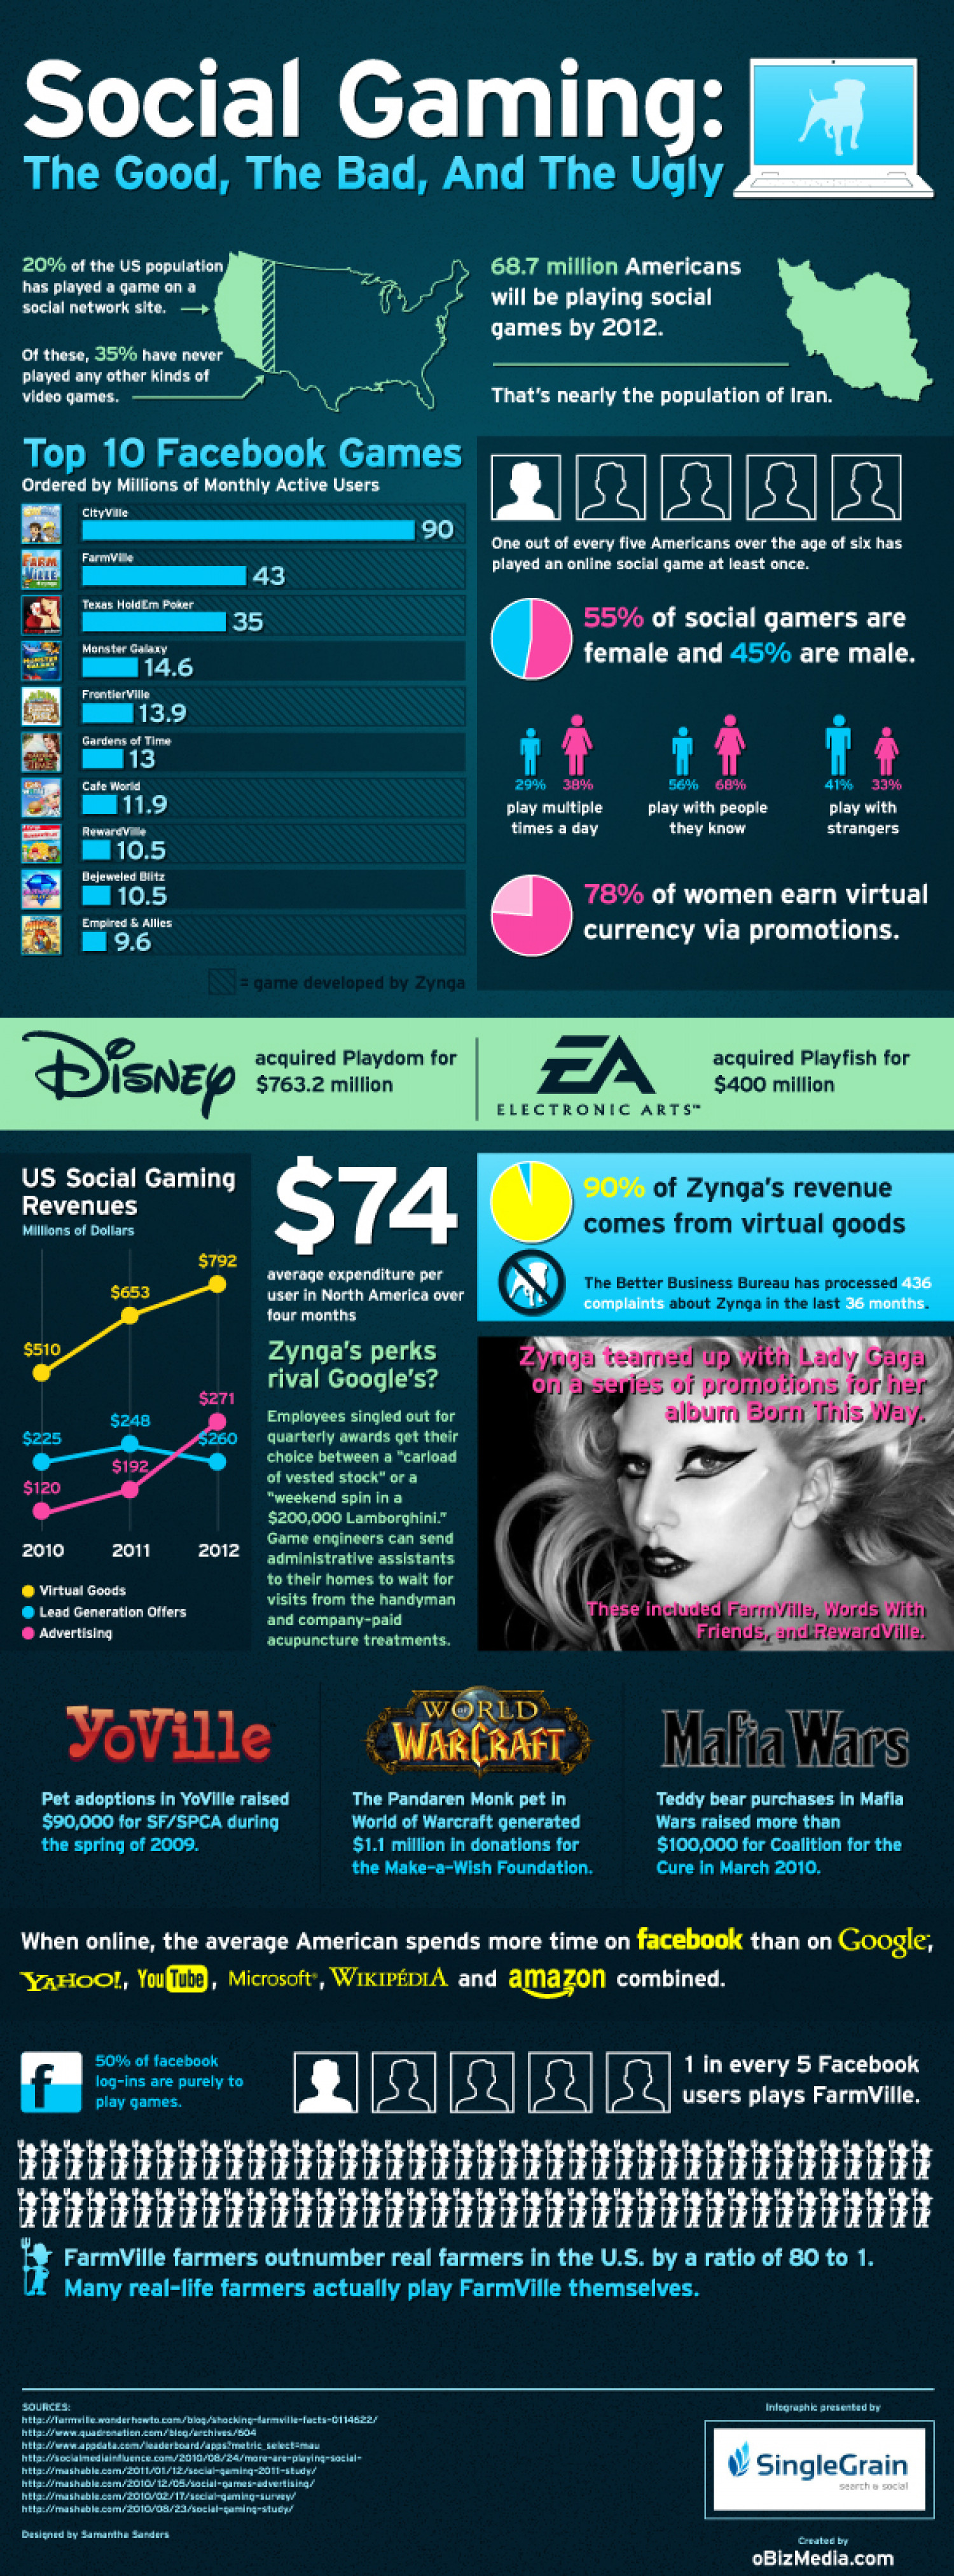 Social Gaming, The Good, The Bad, And the Ugly. Infographic